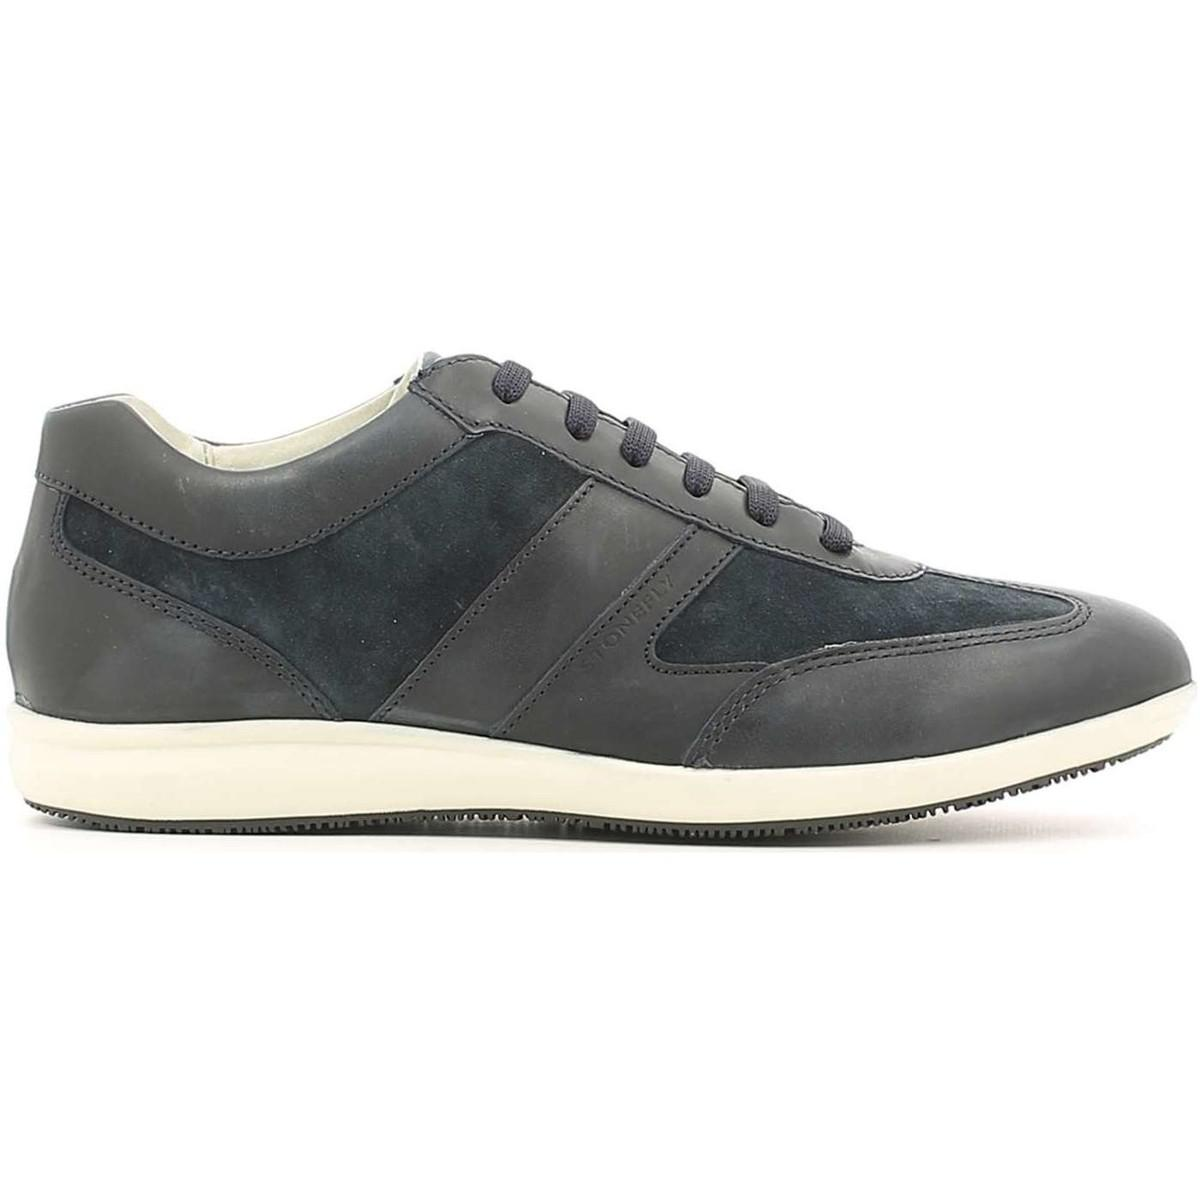 Hyper Online Rabatt Manchester 108657 Shoes with laces Man Grey 44 Stonefly eOgVtz